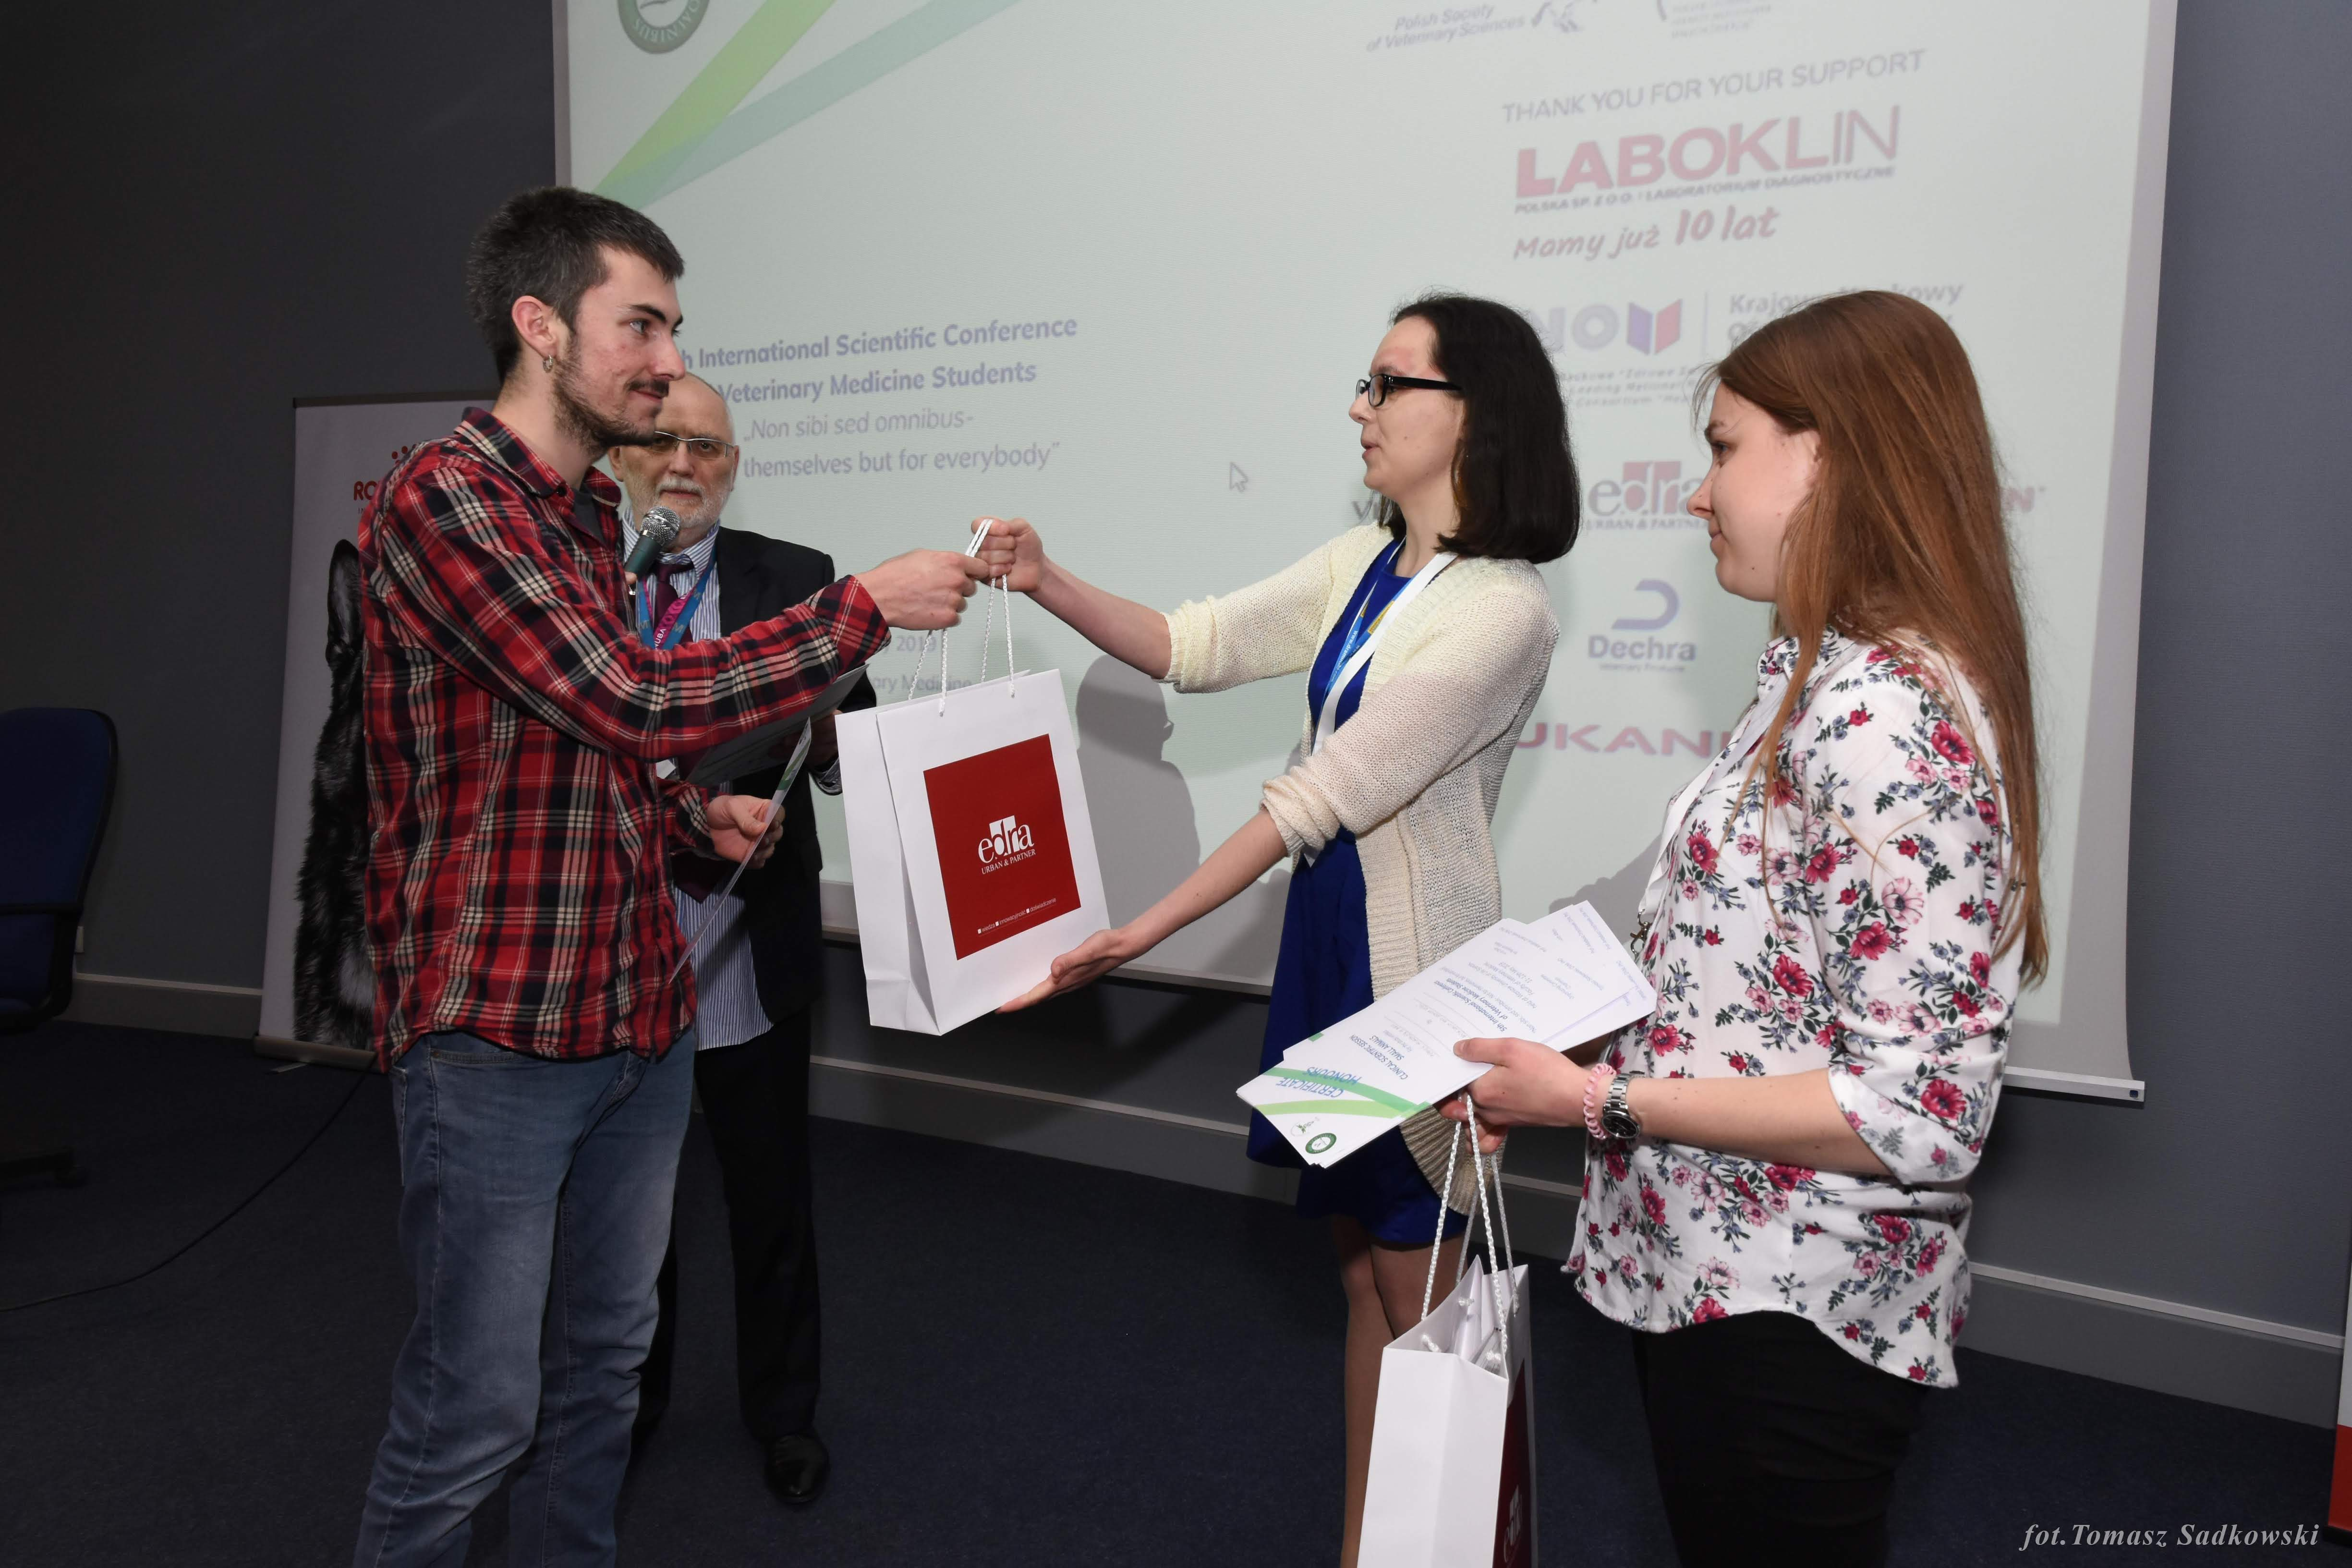 Javier Martinez Caro receiving an award for 'Canine sterile steroid-responsive lymphadenitis - a clinical case'